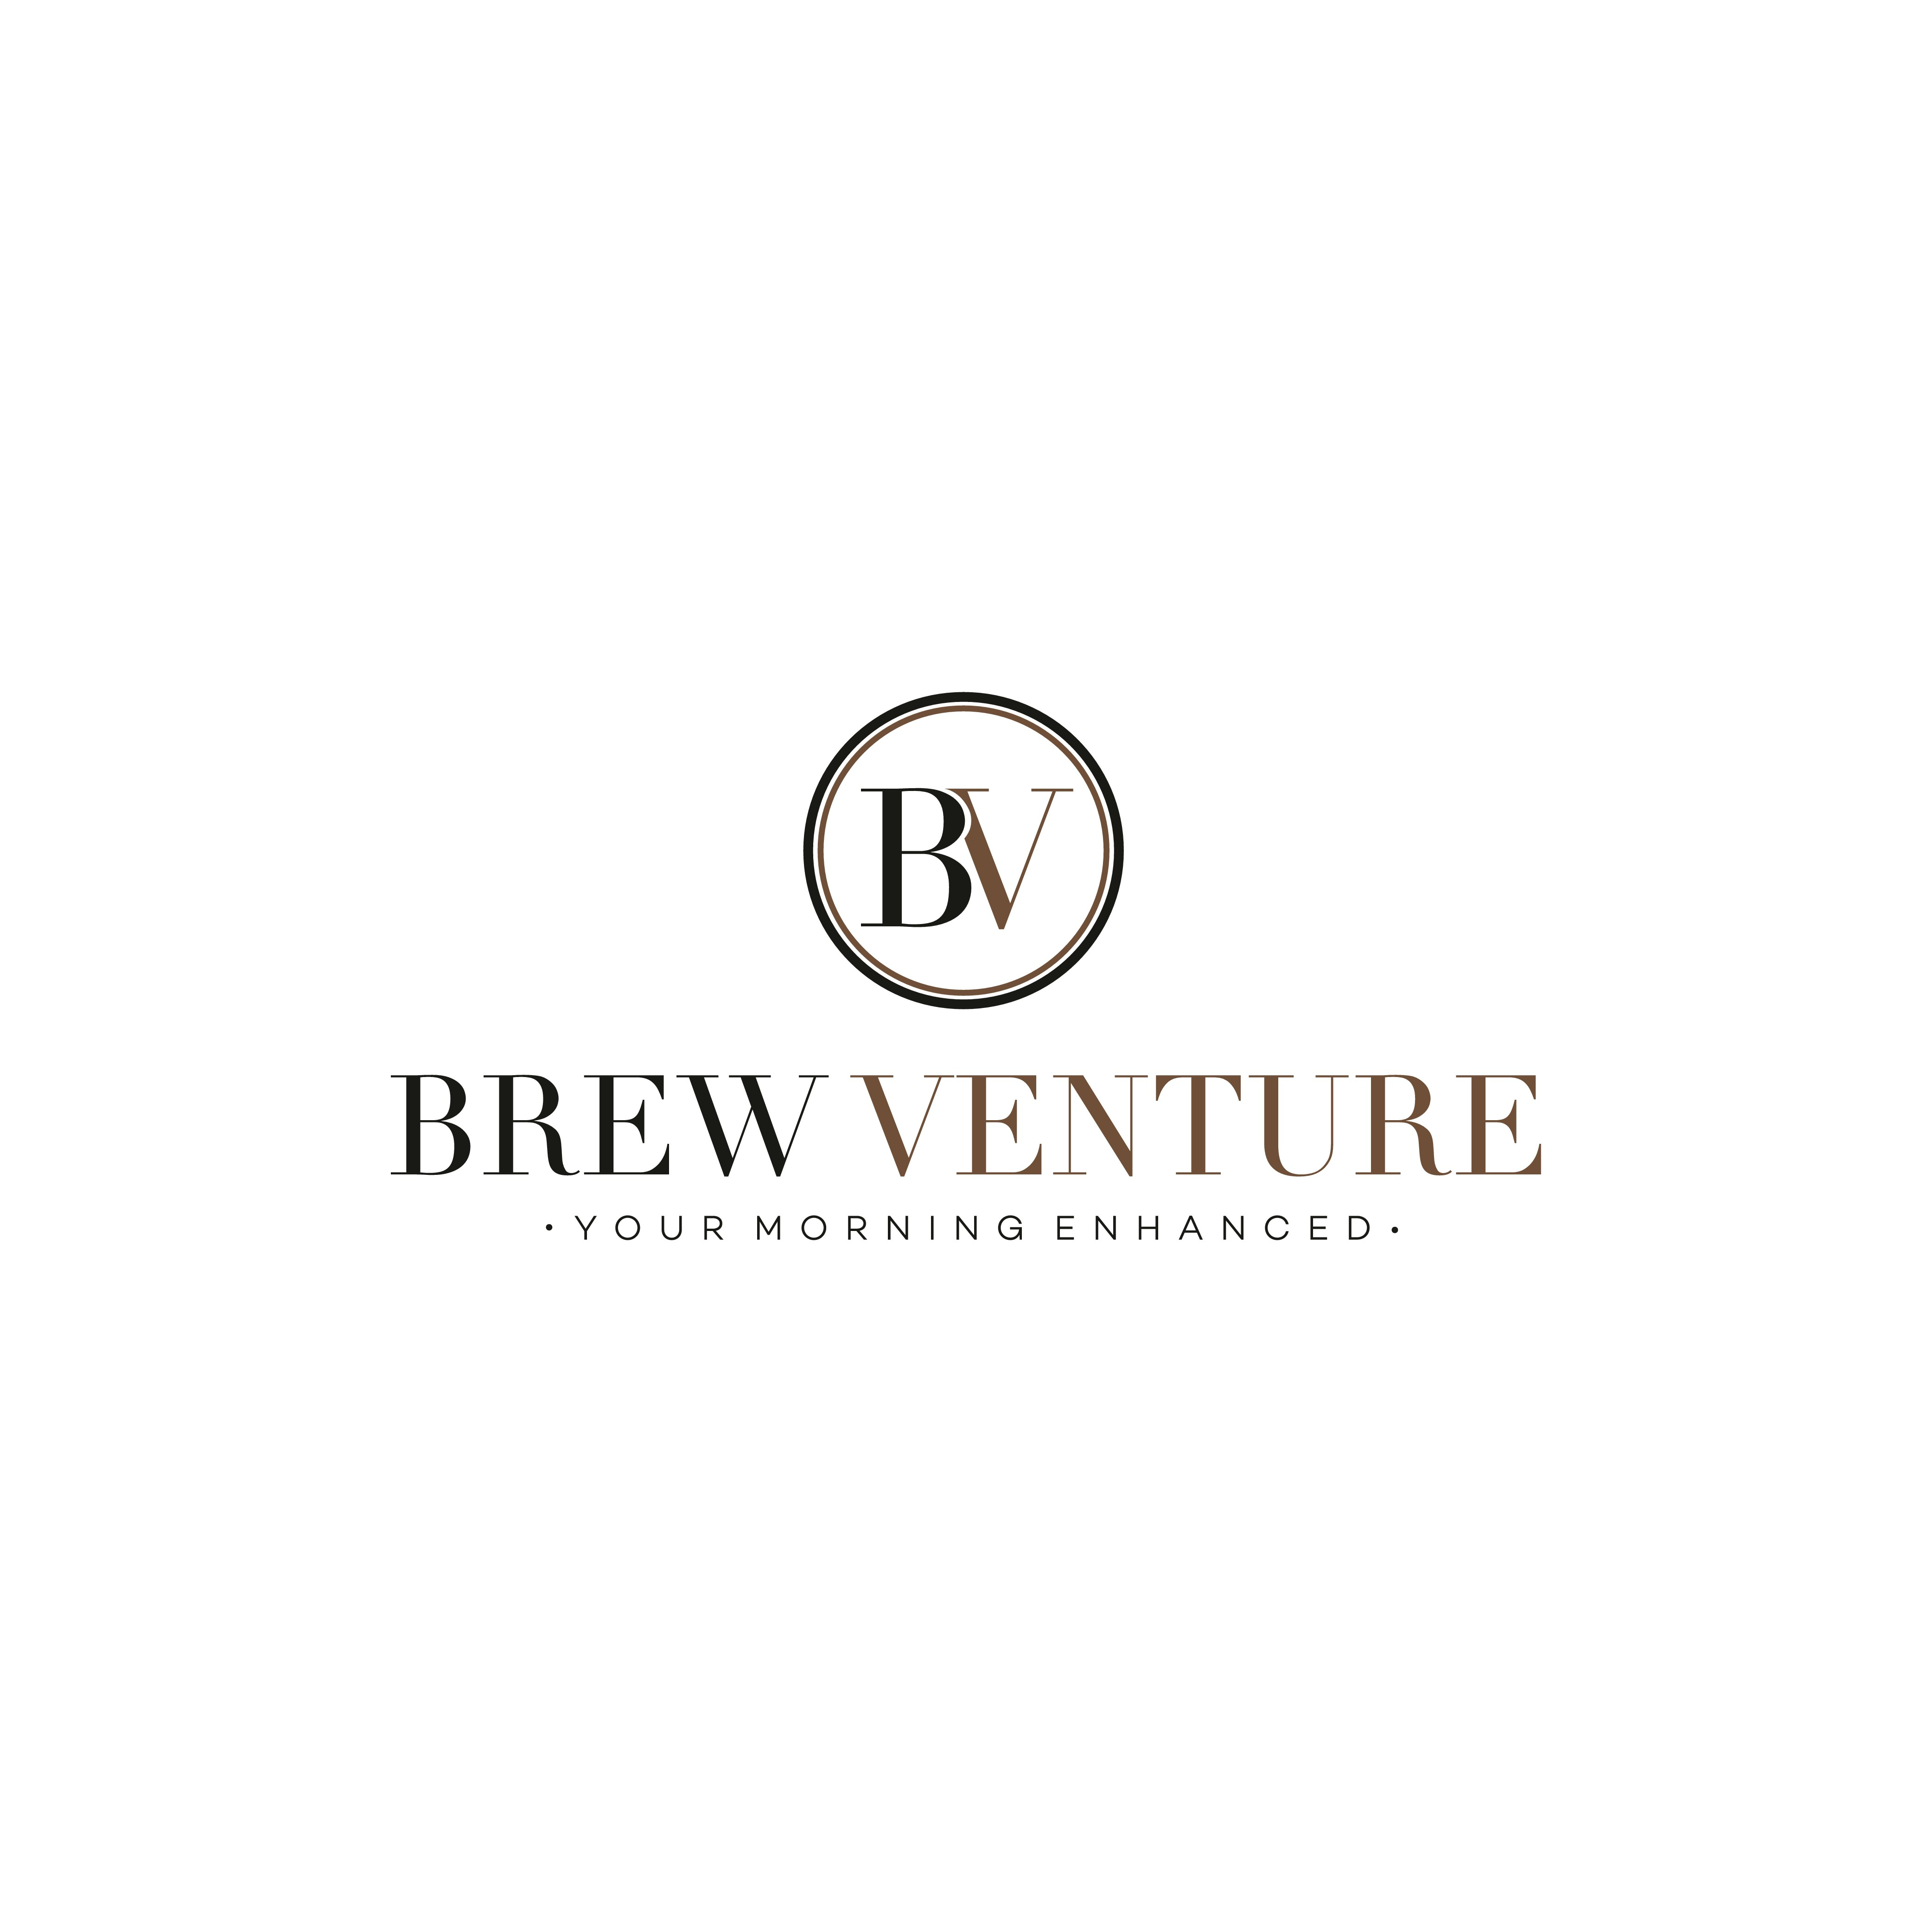 Create a sleek and inspiring logo for coffee subscription/lifestyle company Brew Venture